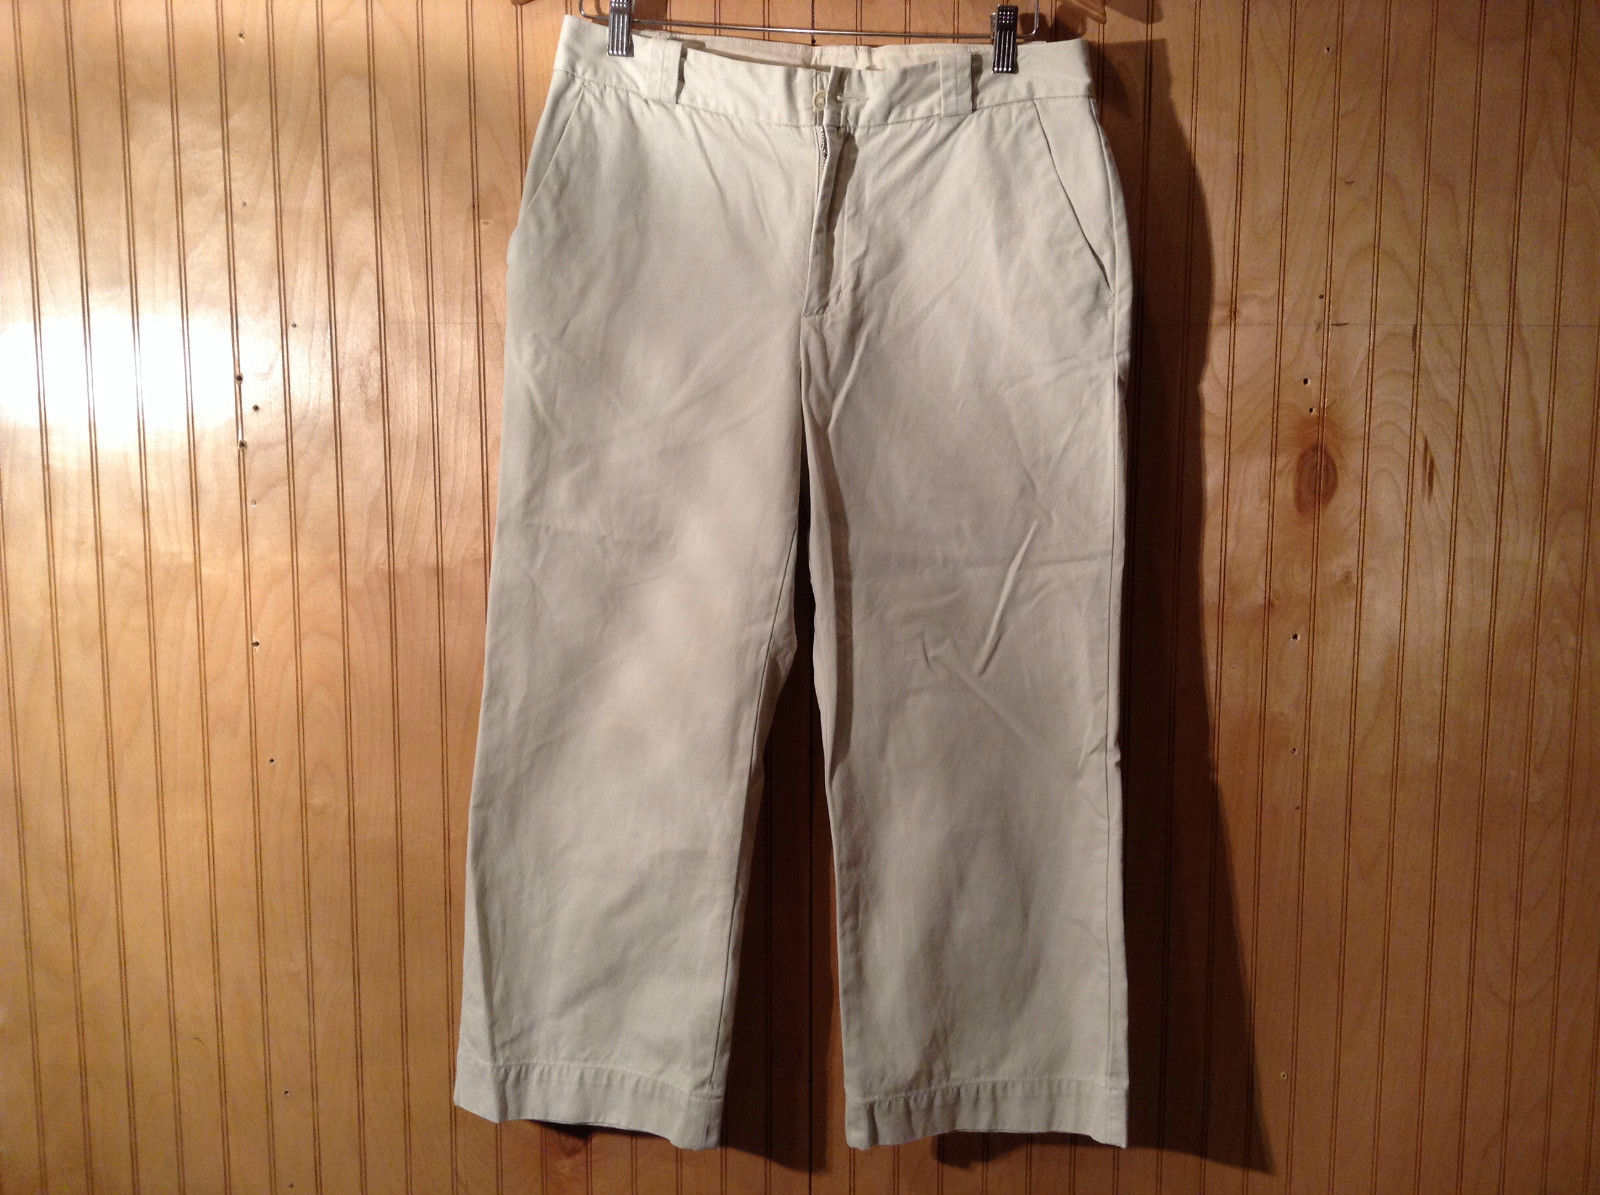 Beige Gap Capri Pants Size 10 Side Pockets Zipper Button Closure Good Condition